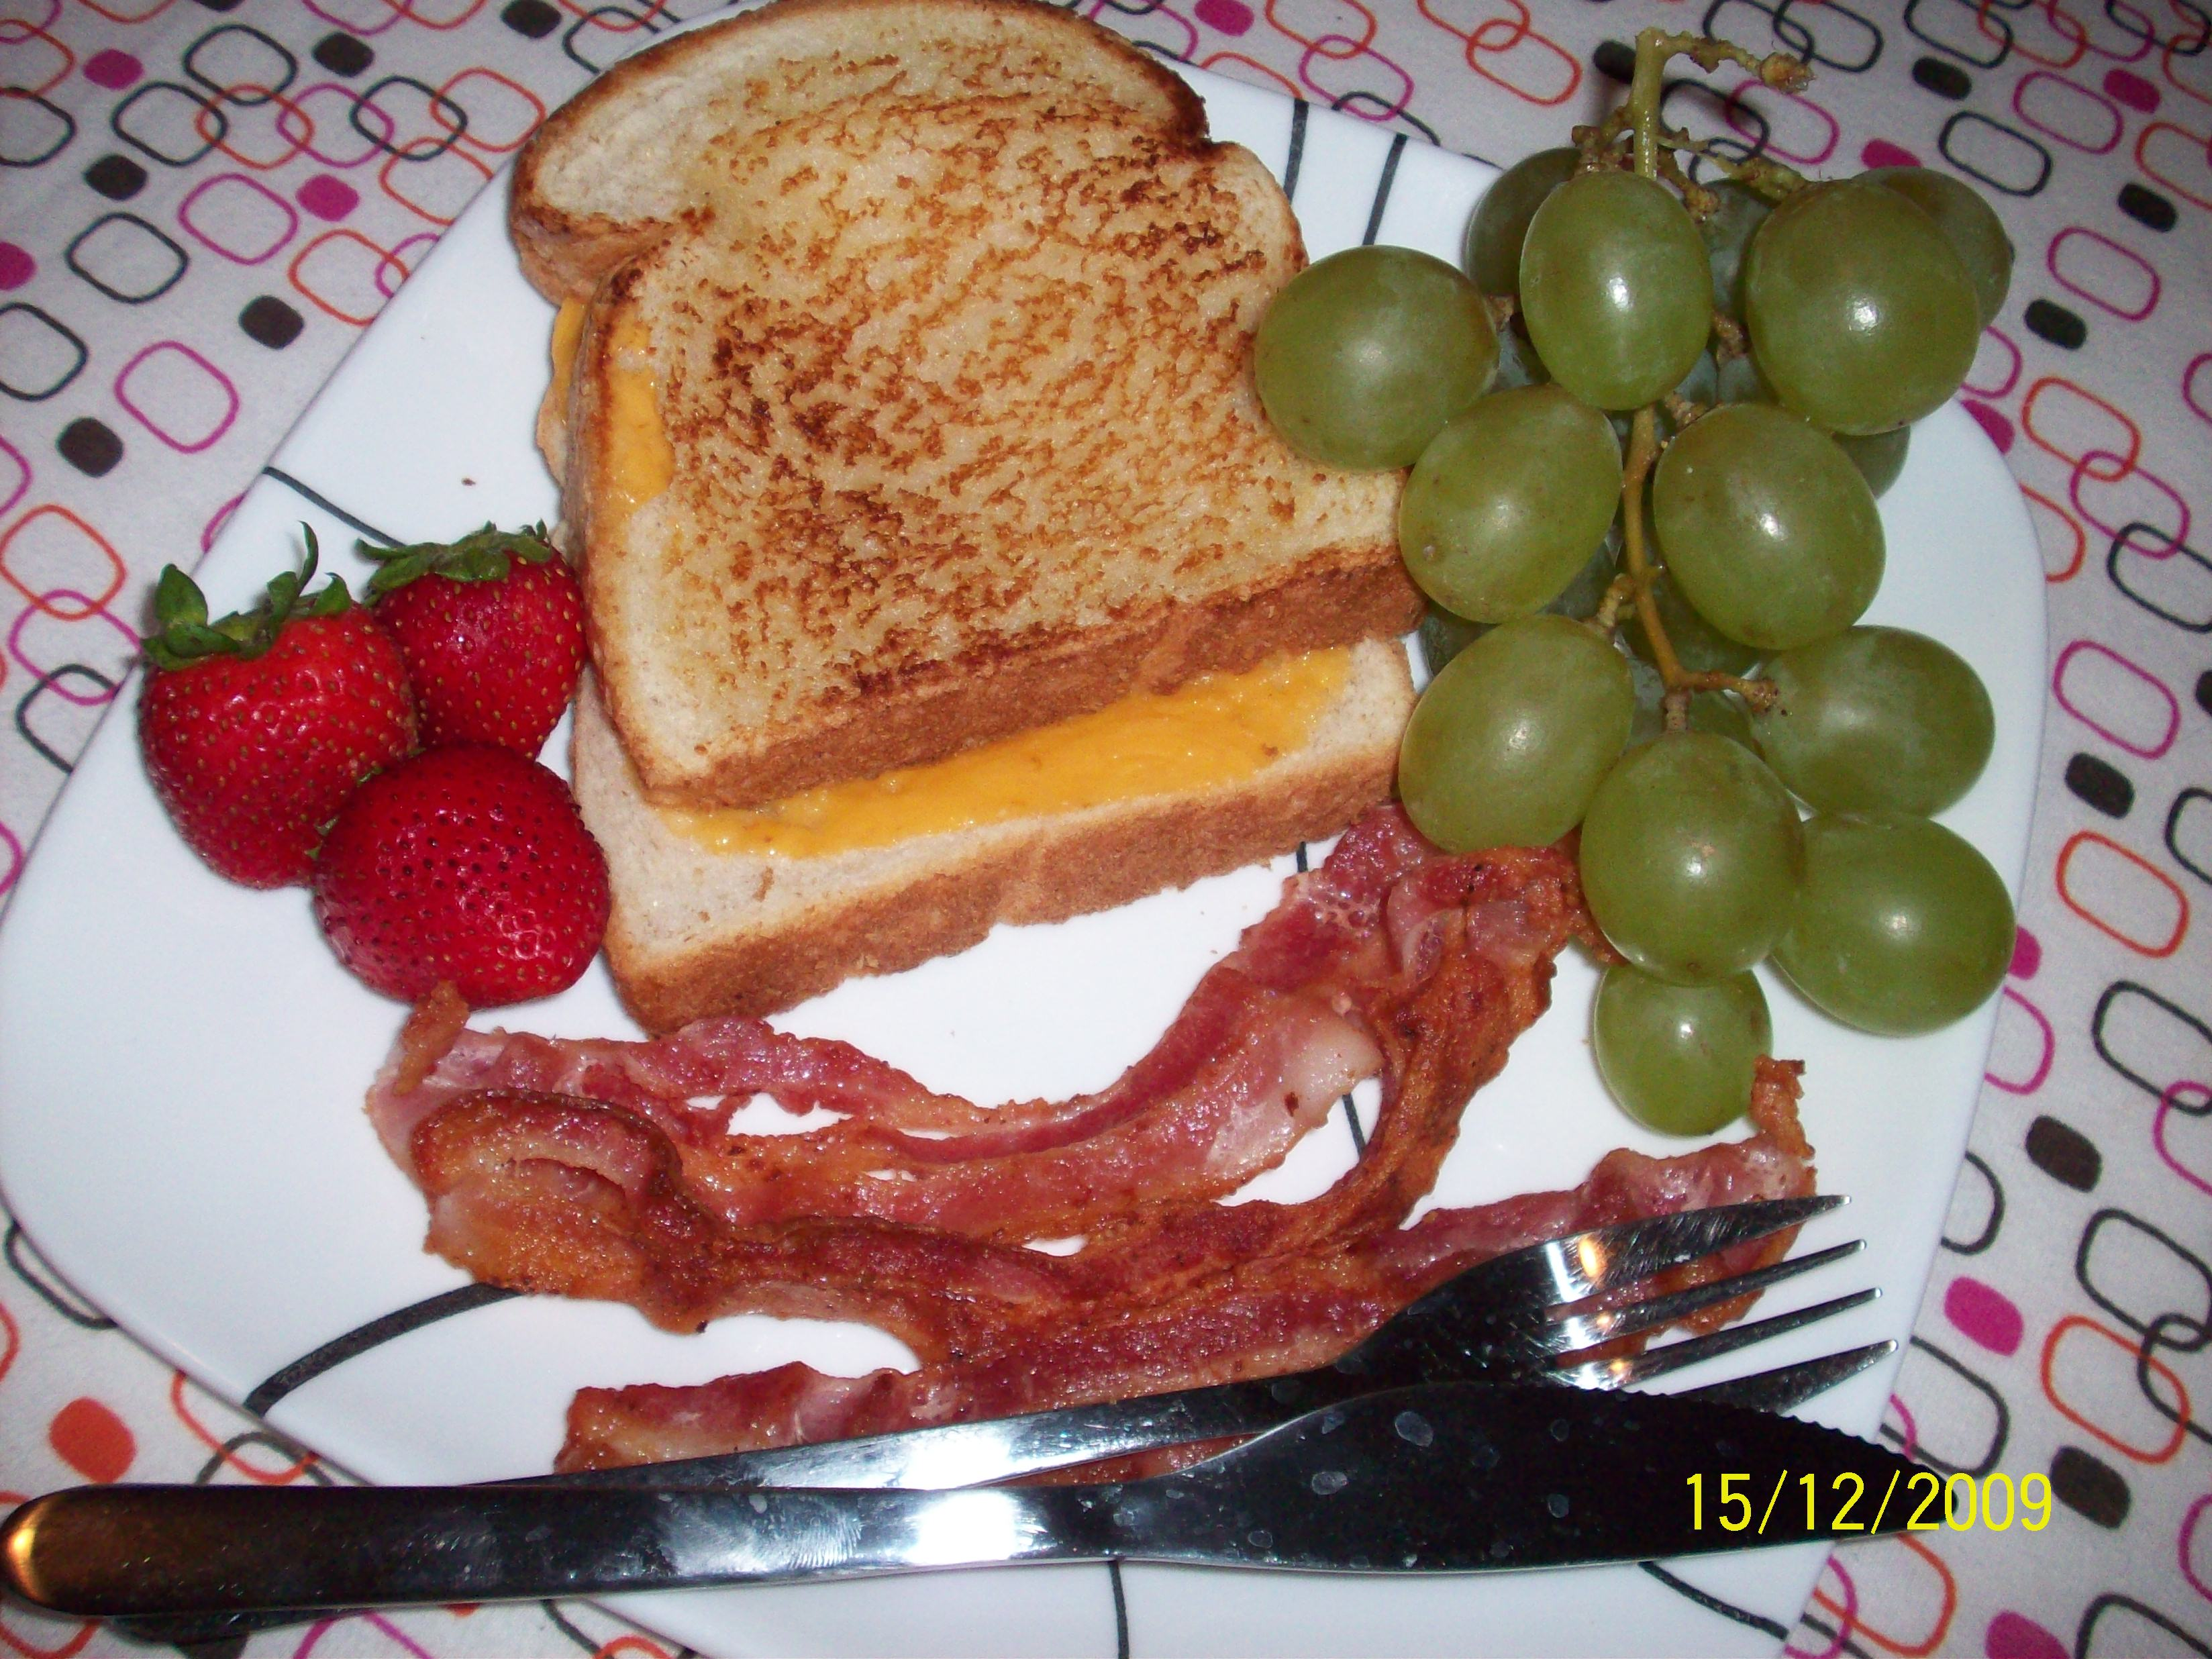 http://foodloader.net/cutie_2009-12-15_Toast__Bacon__Strawberries_and_Grapes.jpg